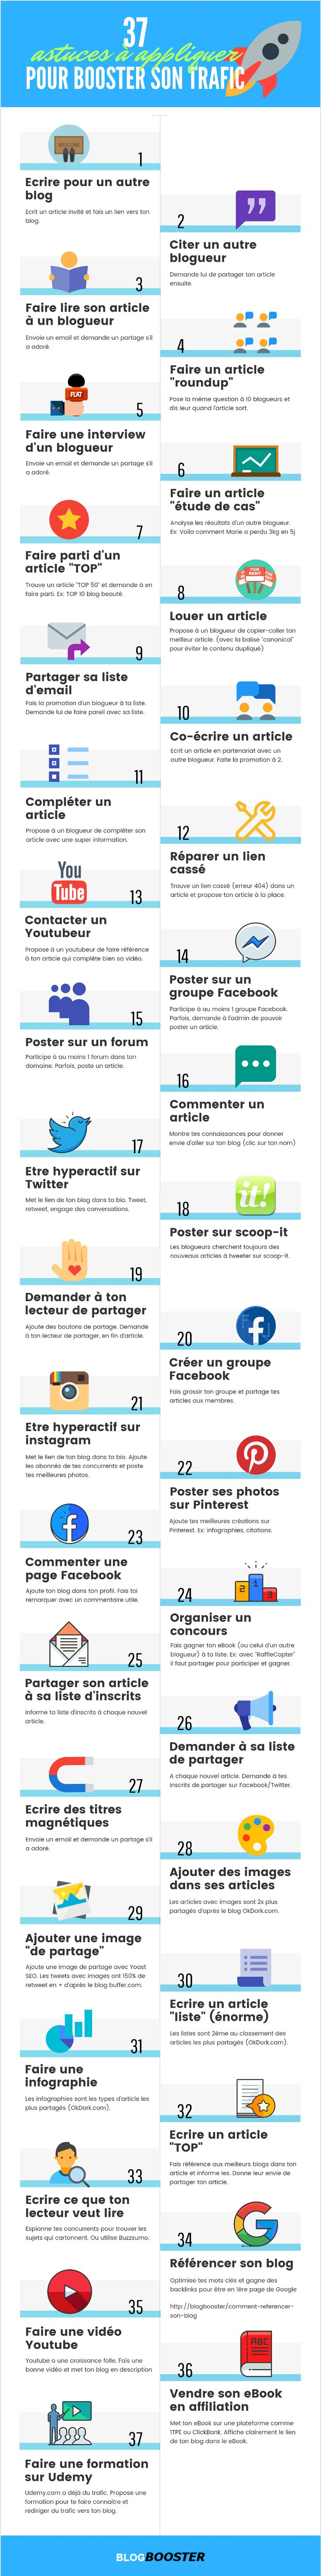 37 astuces pour booster son trafic